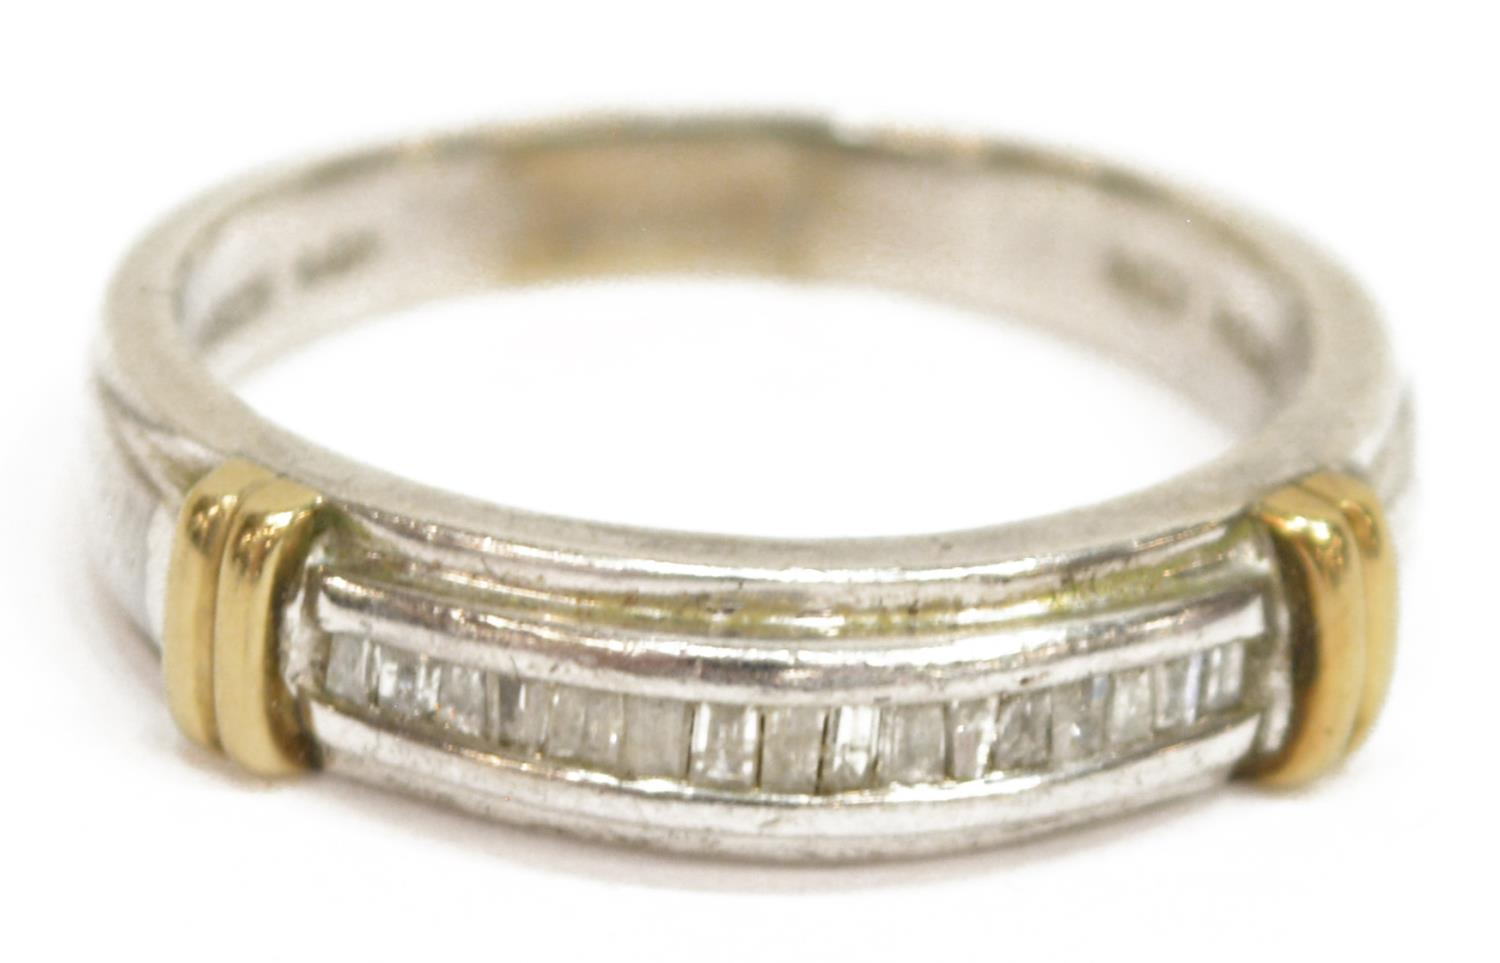 GENTS 14KT GOLD Amp STERLING DIAMOND WEDDING BAND